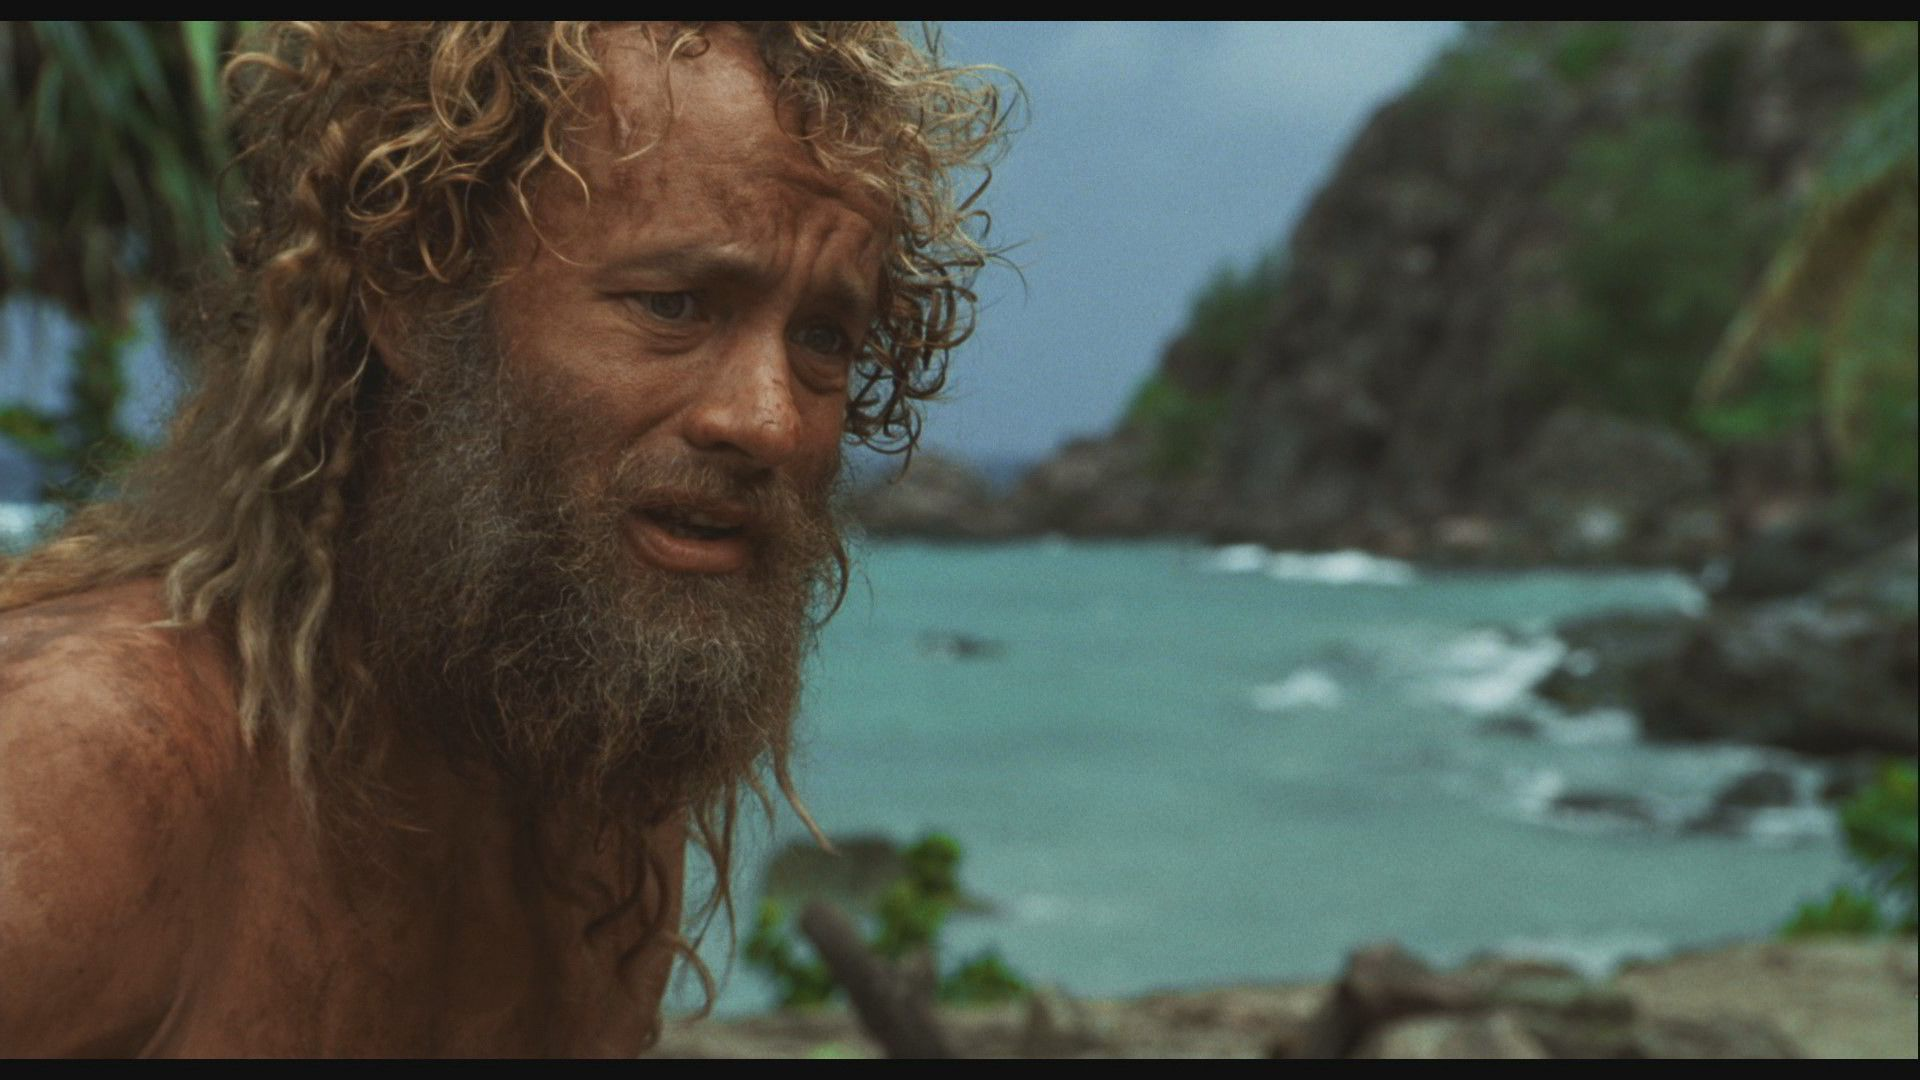 2000 Seul Au Monde Cast Away By Robert Zemeckis Tom Hanks Favorite Movie Quotes Famous Movies